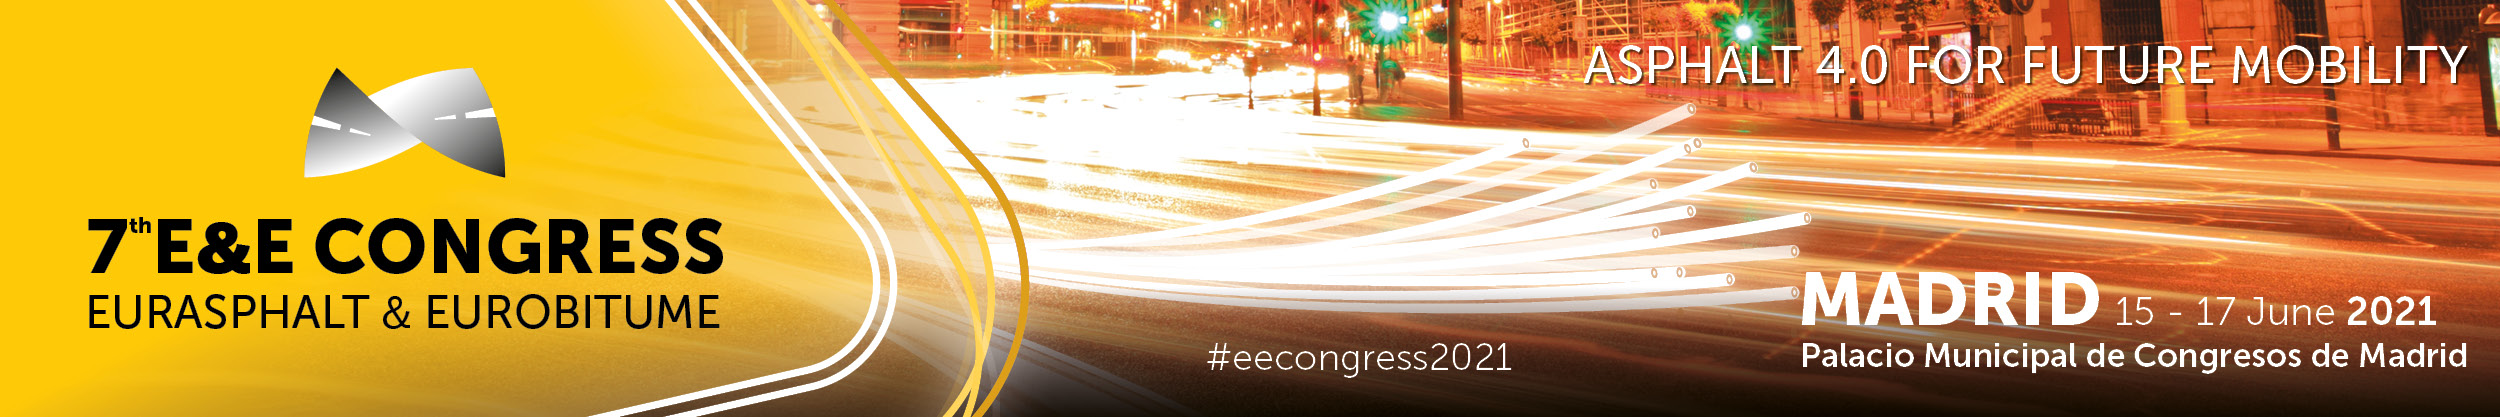 7th E&E Congress EUROASPHALT & EUROBITUME. 15-17 June 2022. Madrid Spain